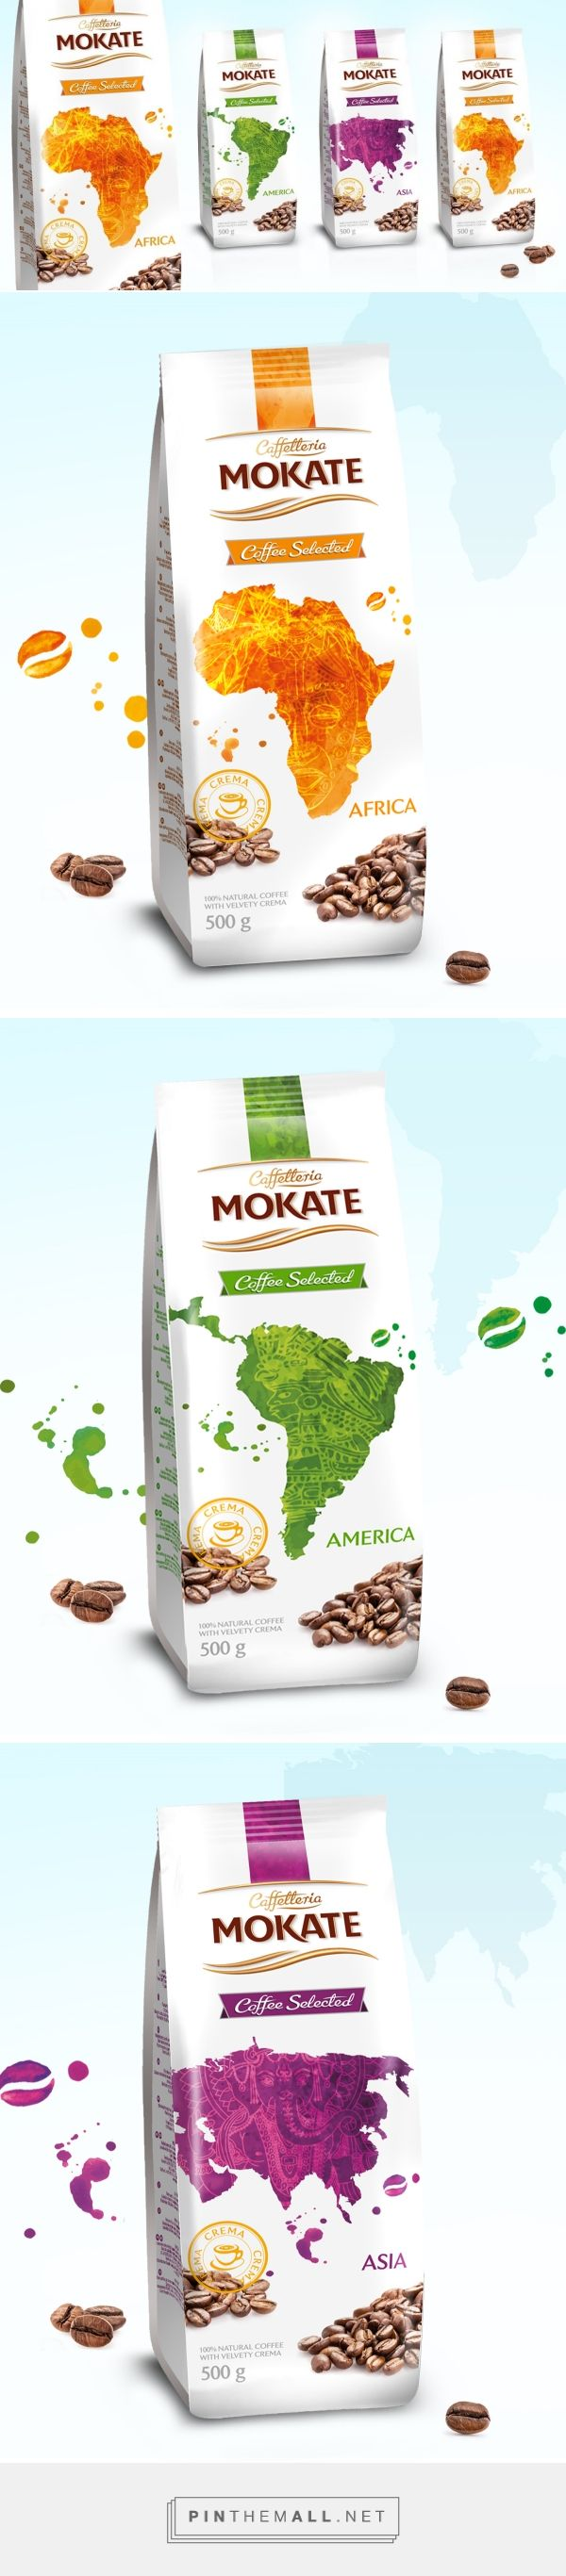 Mokate Coffee Selected - Packaging of the World - Creative Package Design Gallery - http://www.packagingoftheworld.com/2016/05/mokate-coffee-selected.html